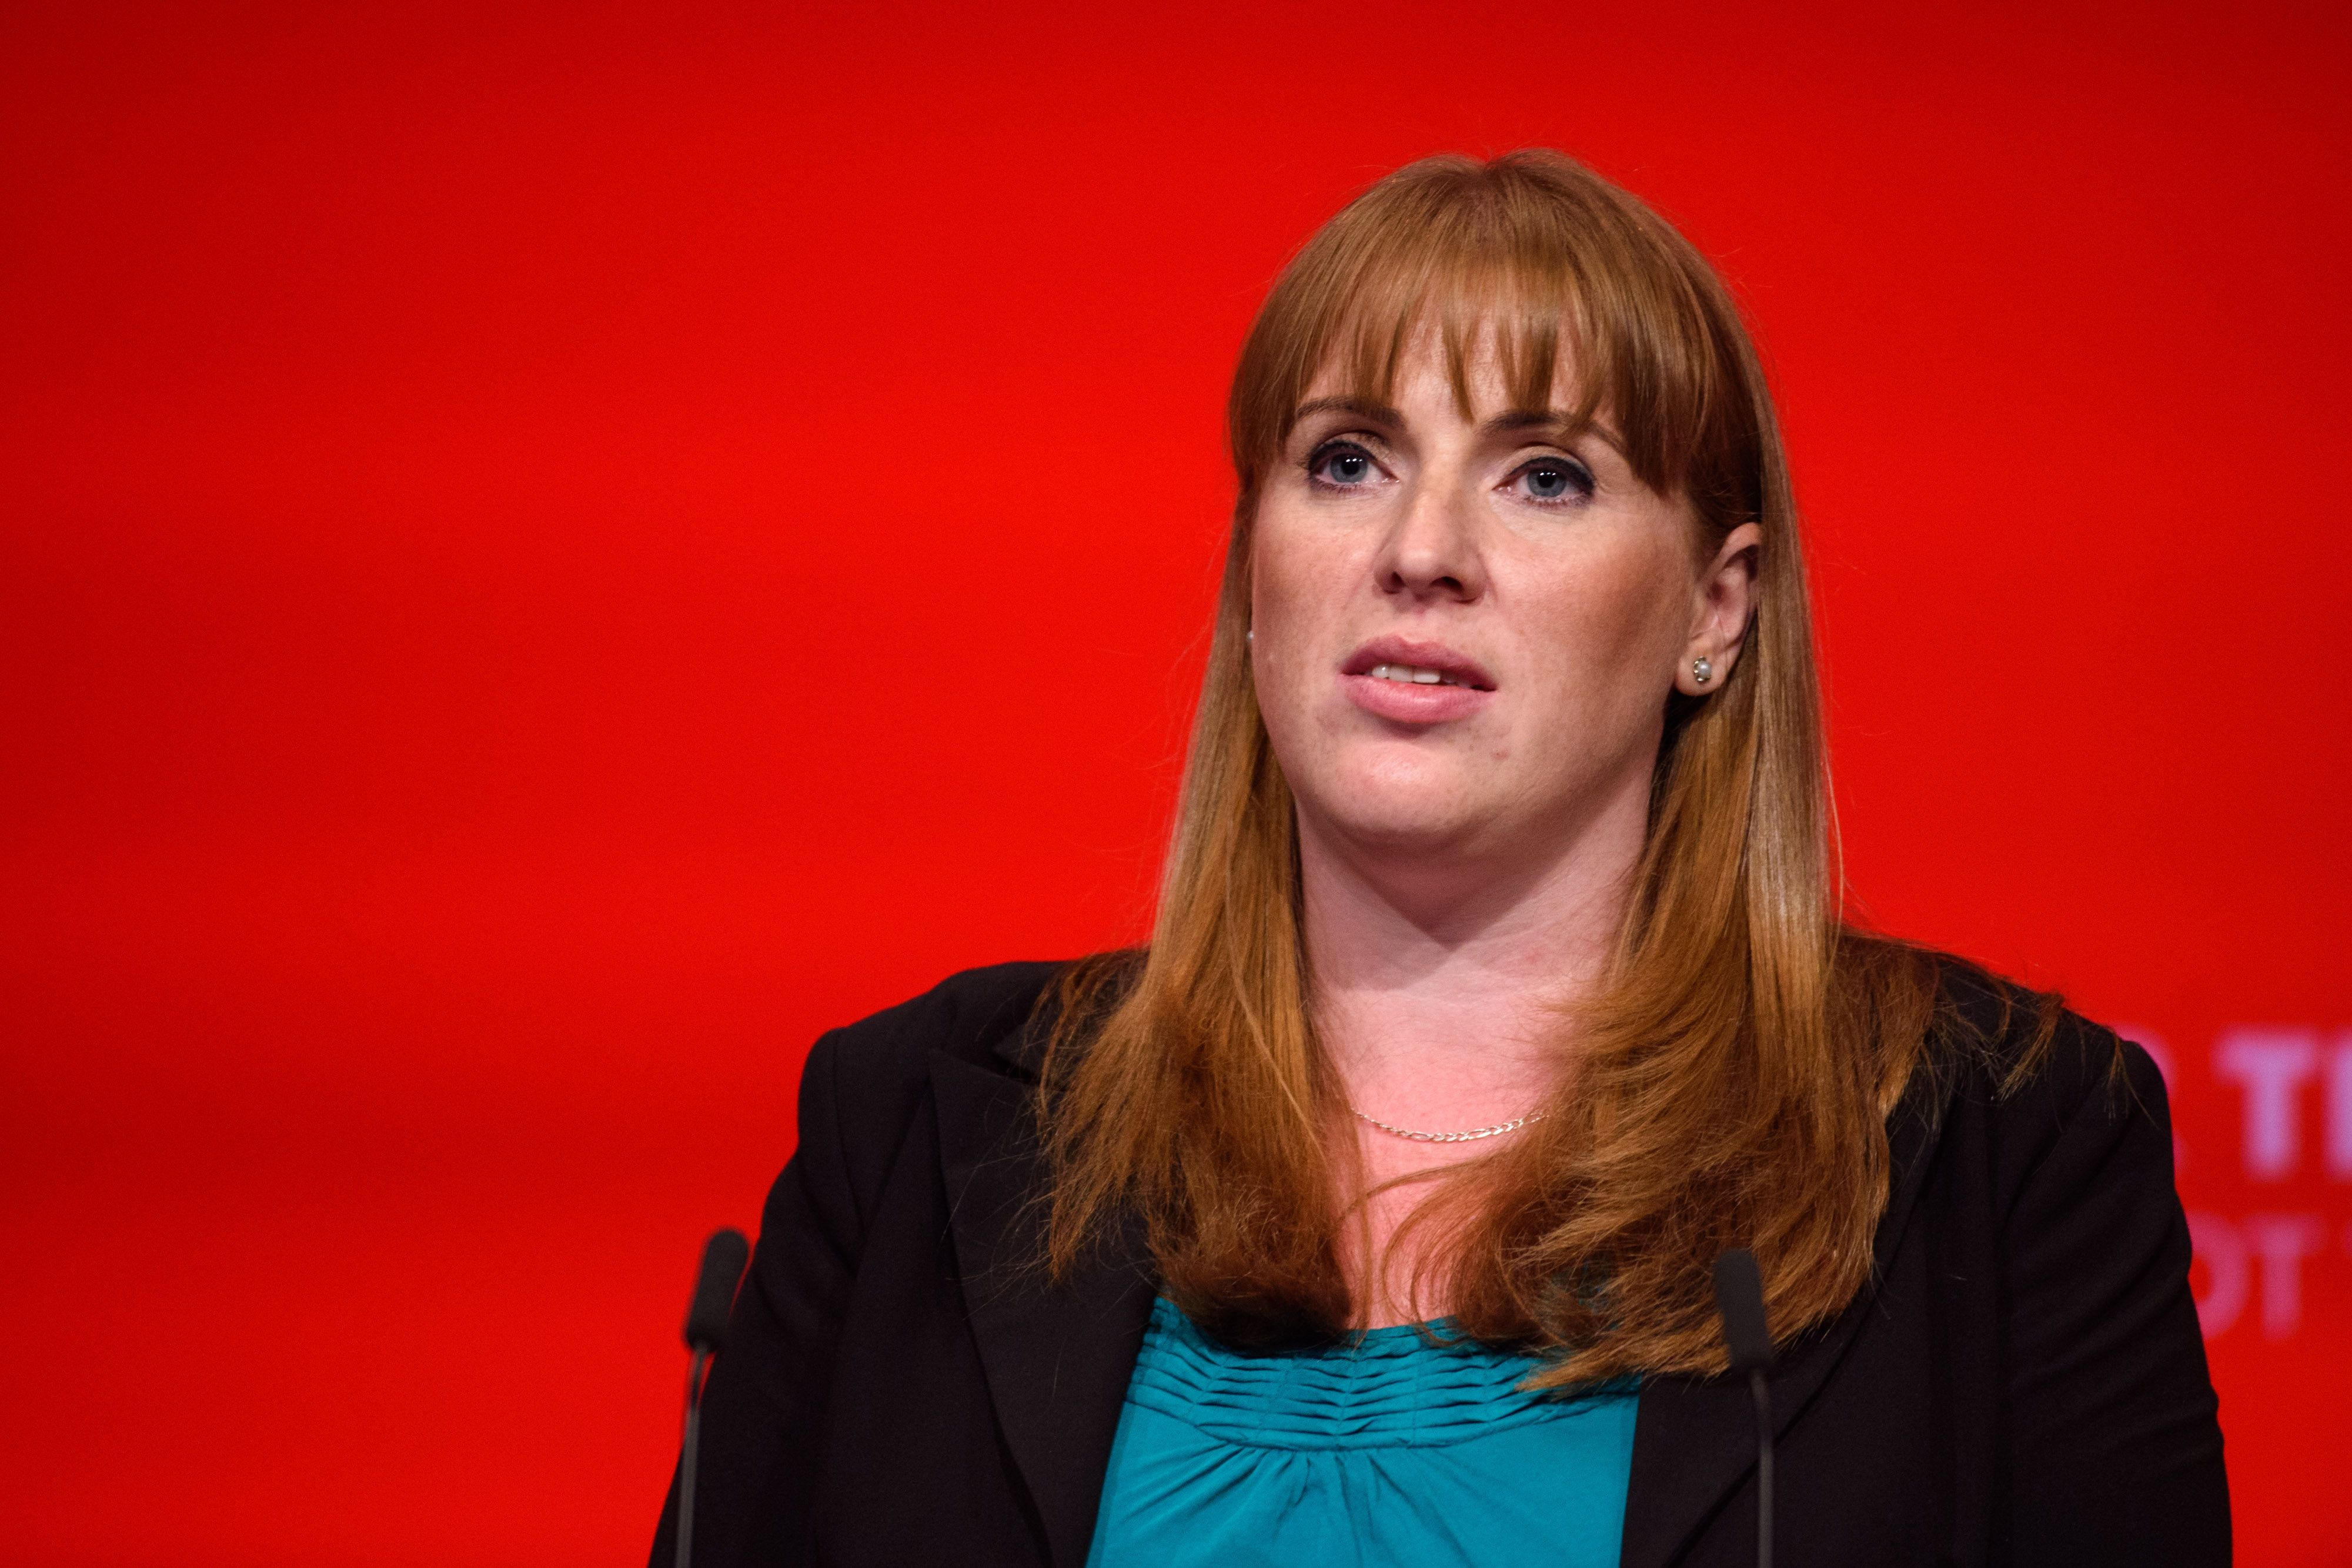 Angela Rayner: Working Class Politicians Get Their Background 'Beaten Out Of